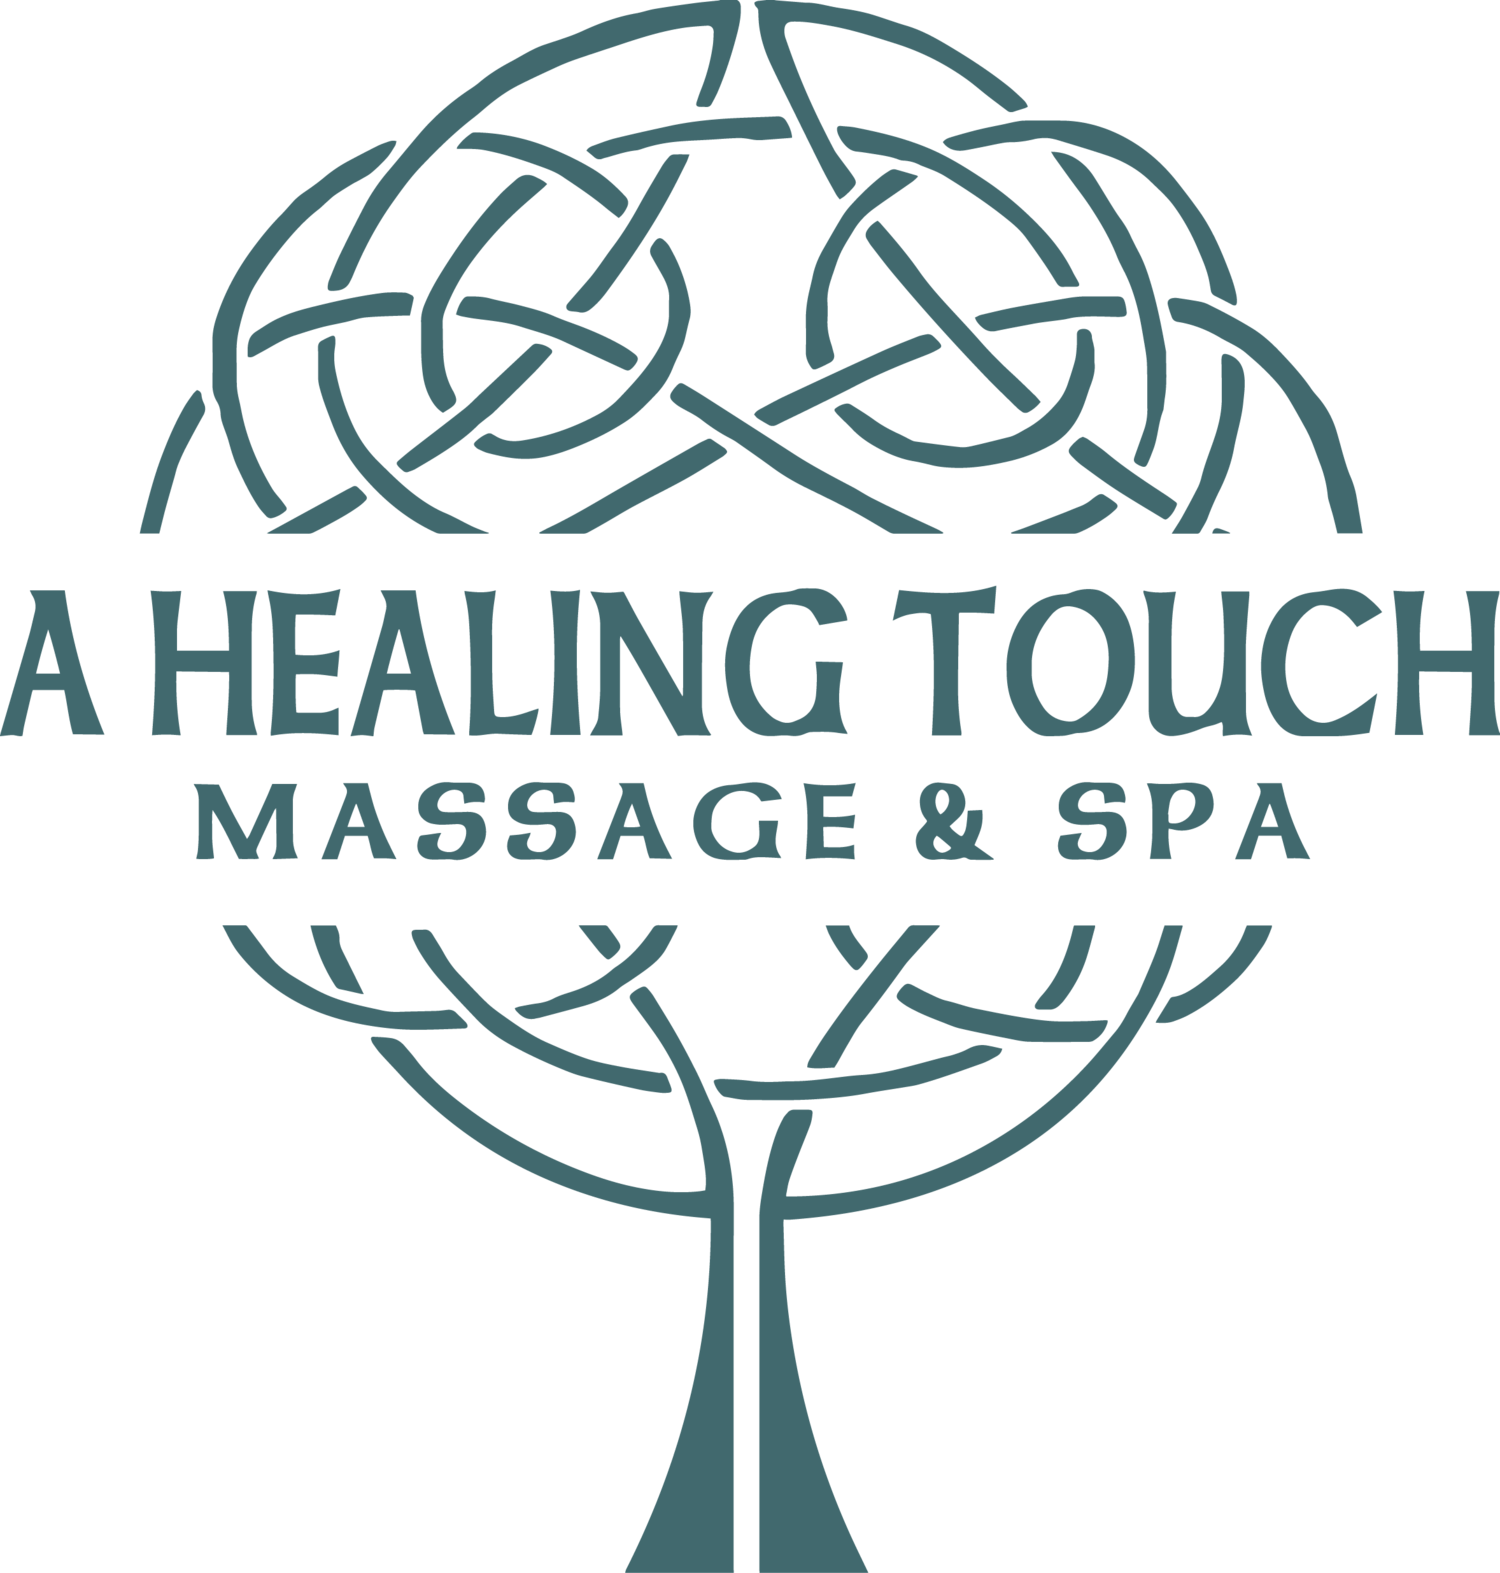 A Healing Touch Massage & Spa